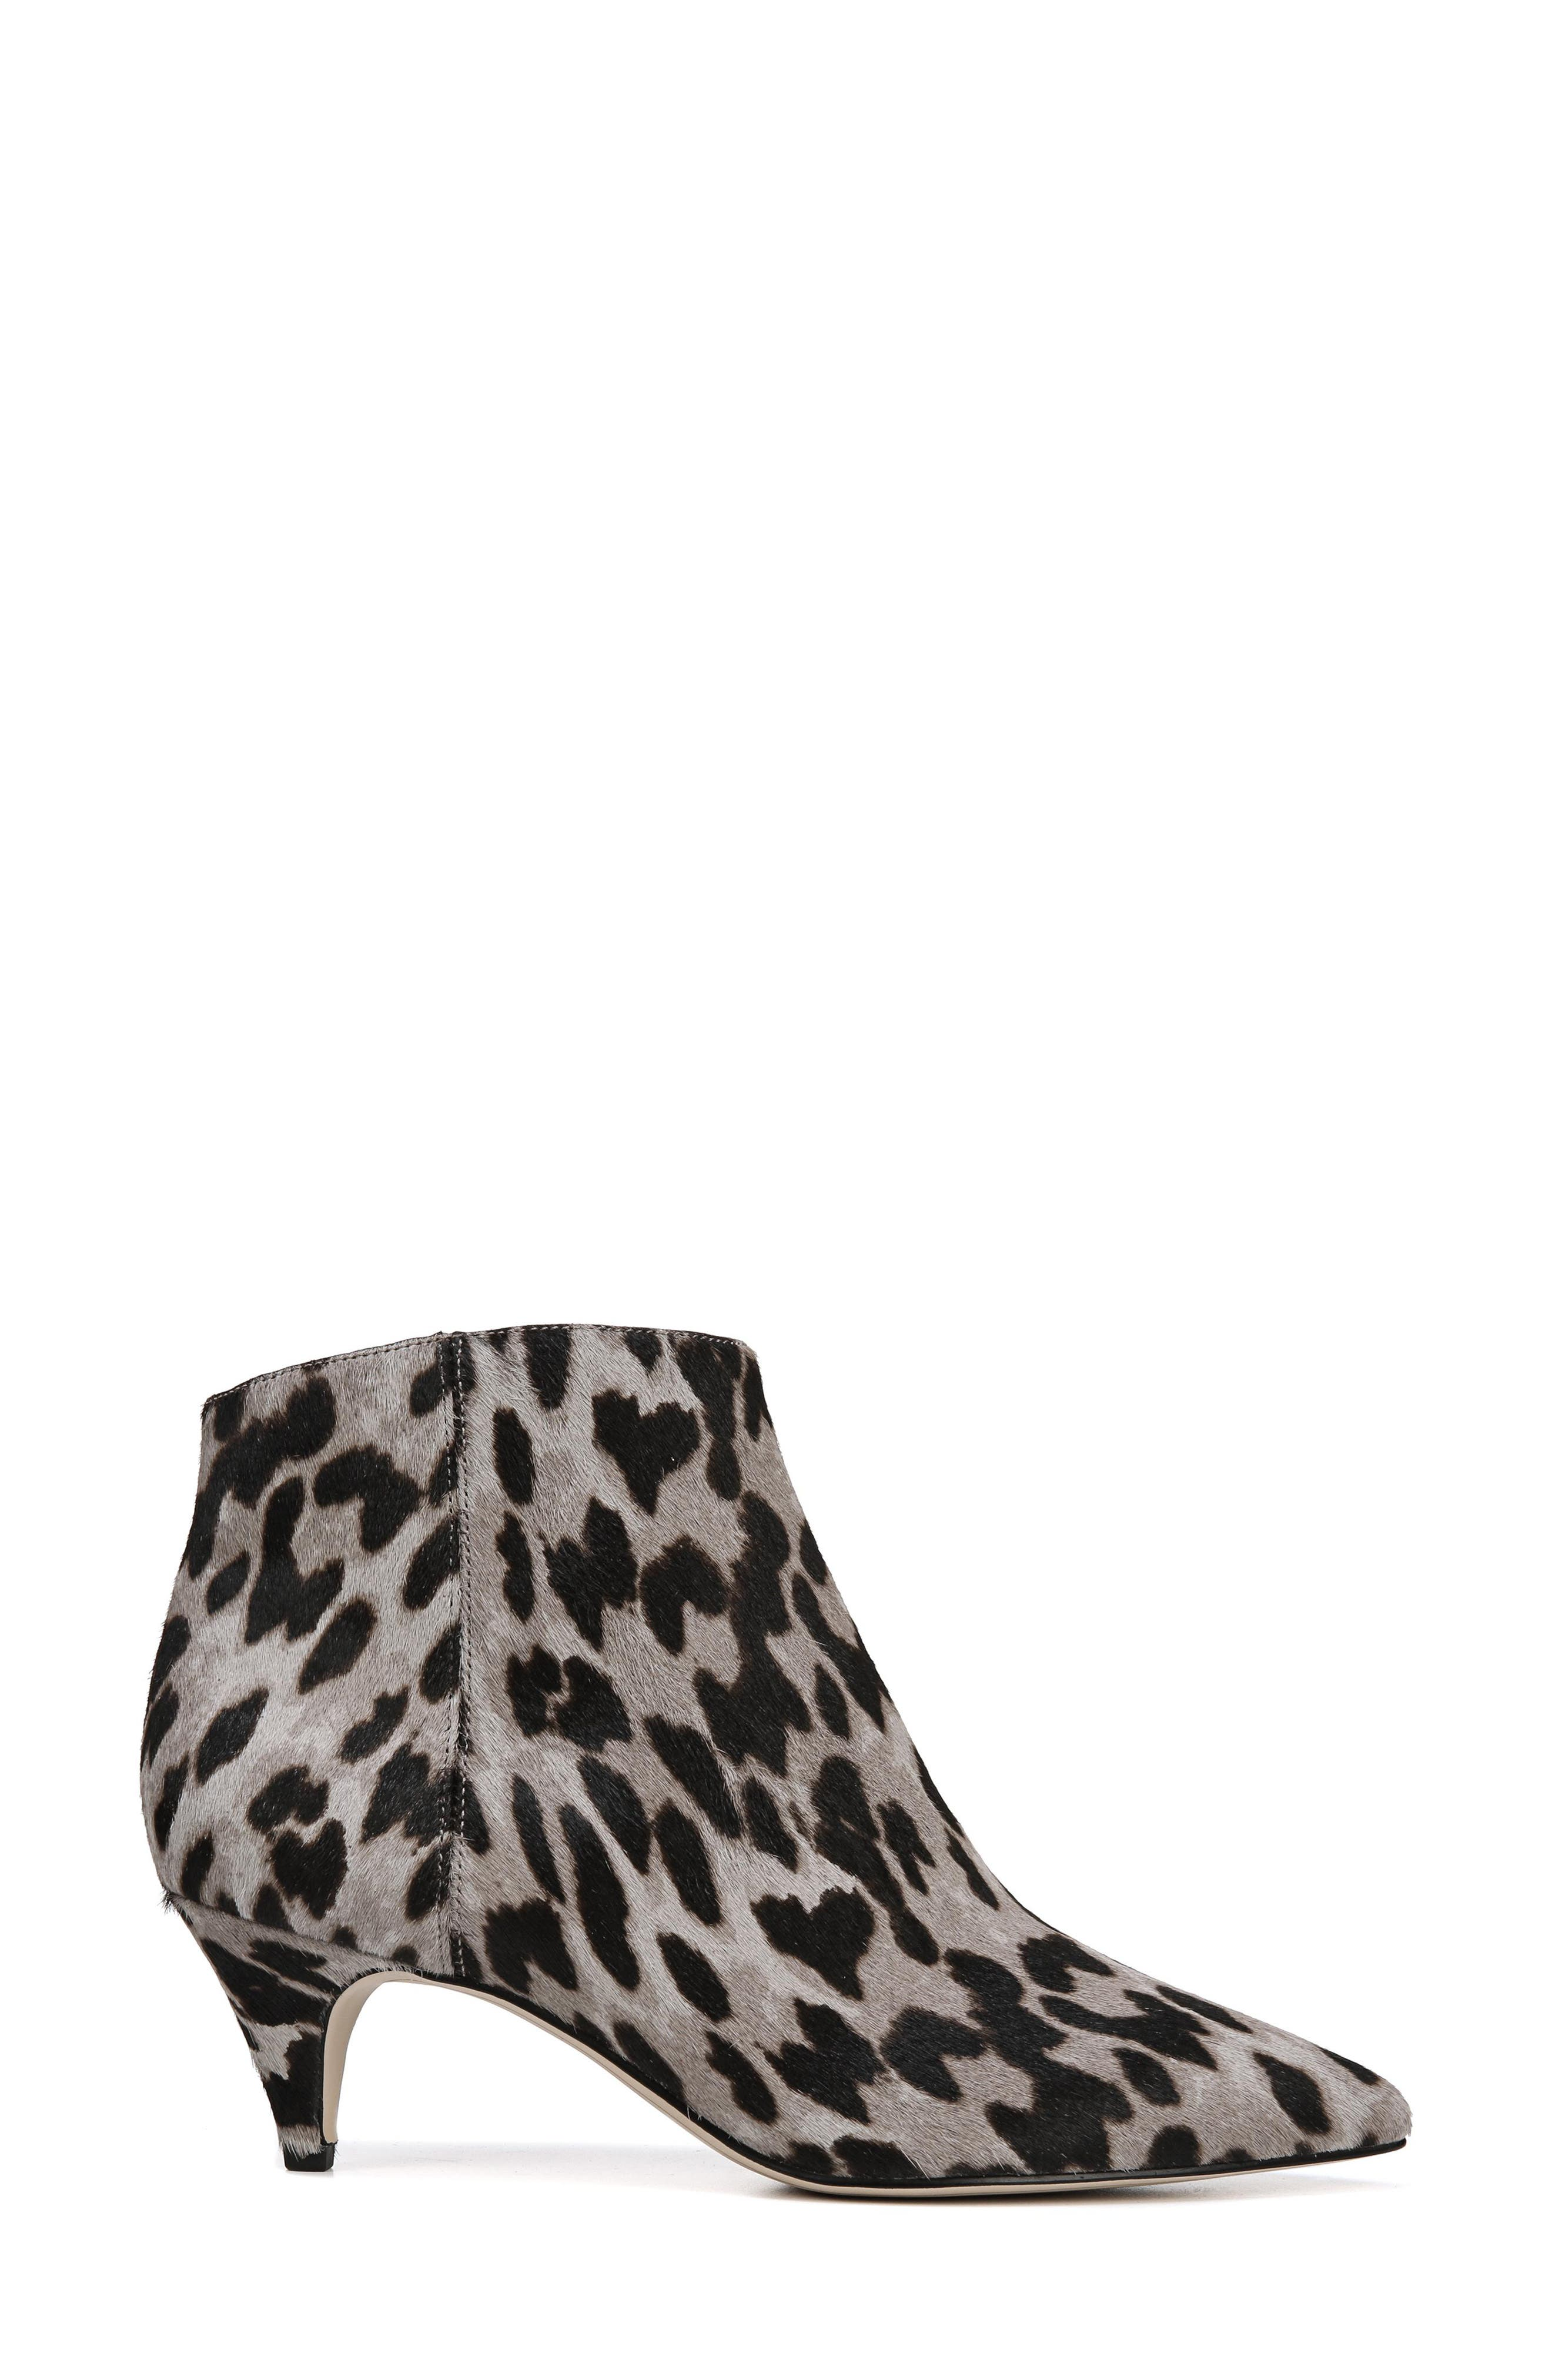 Kinzey Genuine Calf Hair Pointy Toe Bootie,                             Alternate thumbnail 3, color,                             GREY LEOPARD BRAHMA HAIR